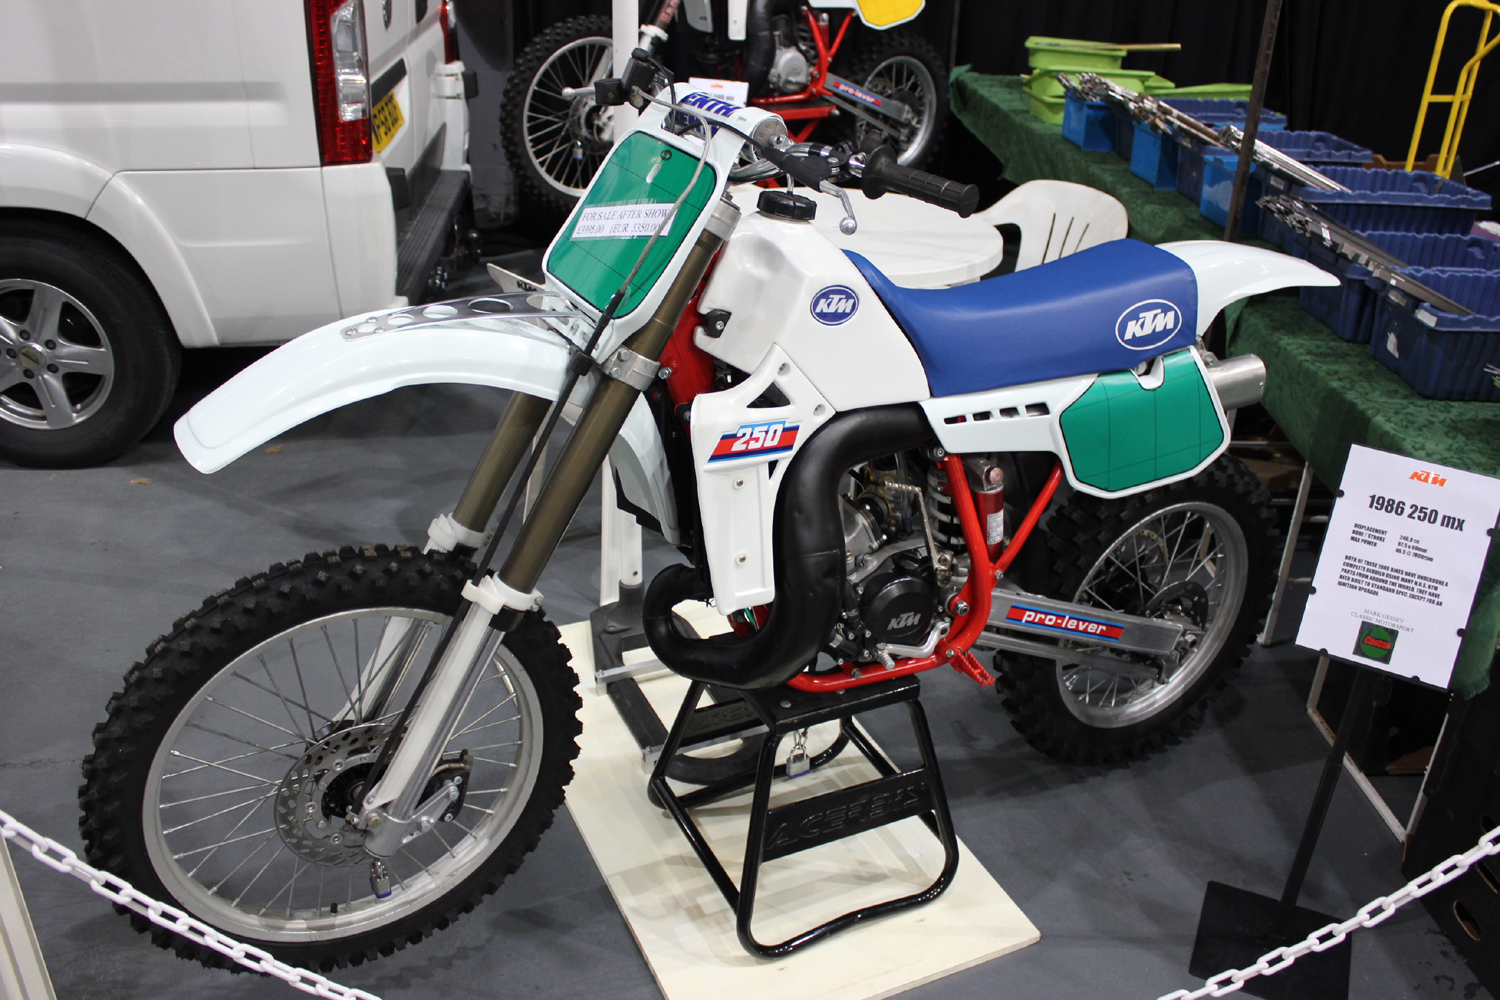 classicdirtbikerider.com-photo by Mr J-2015 Telford classic dirt bike show-1986 KTM250 MOTOCROSS BIKE